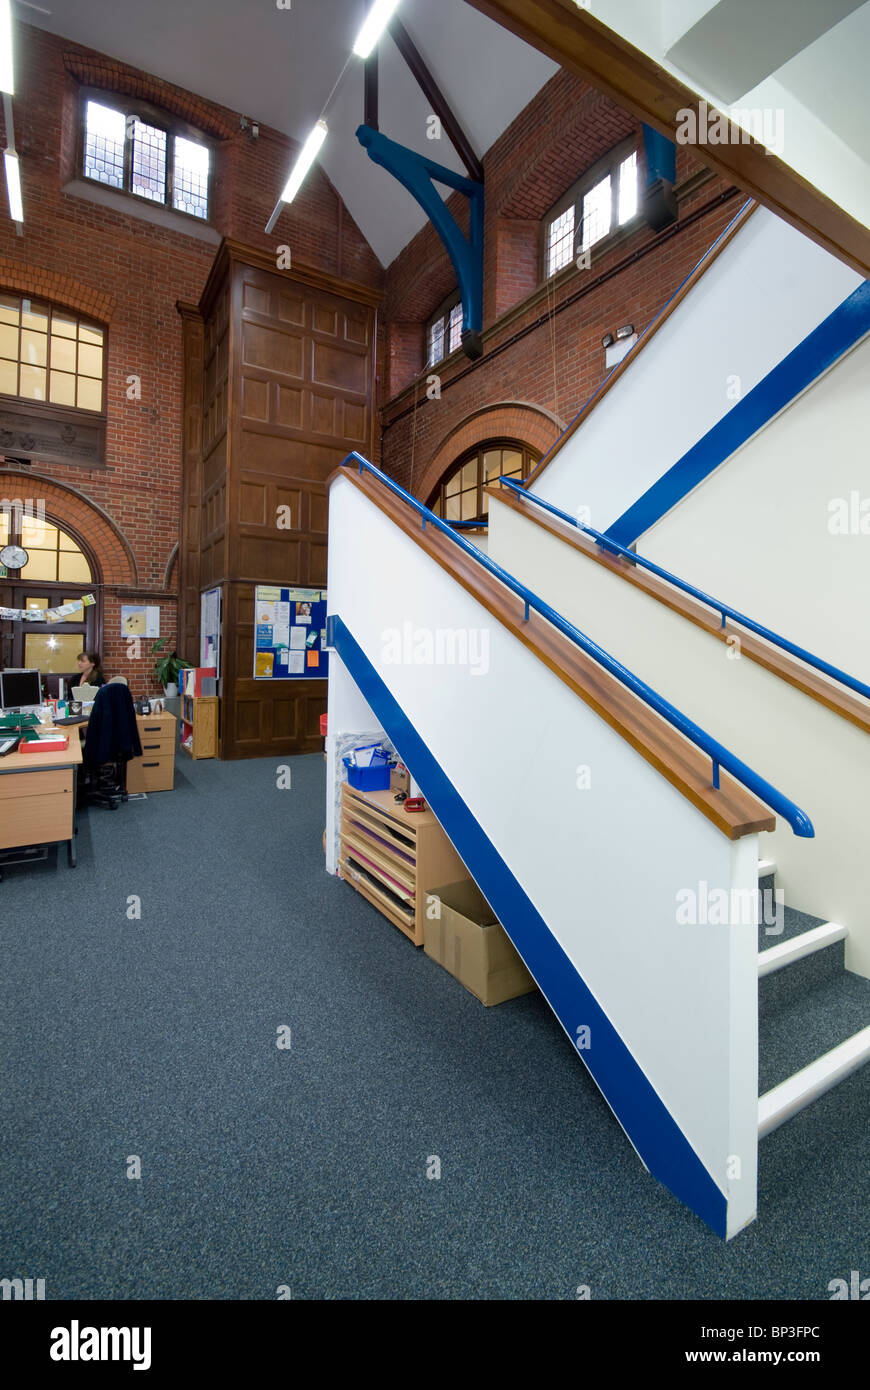 Peter Symonds College staircase - Stock Image